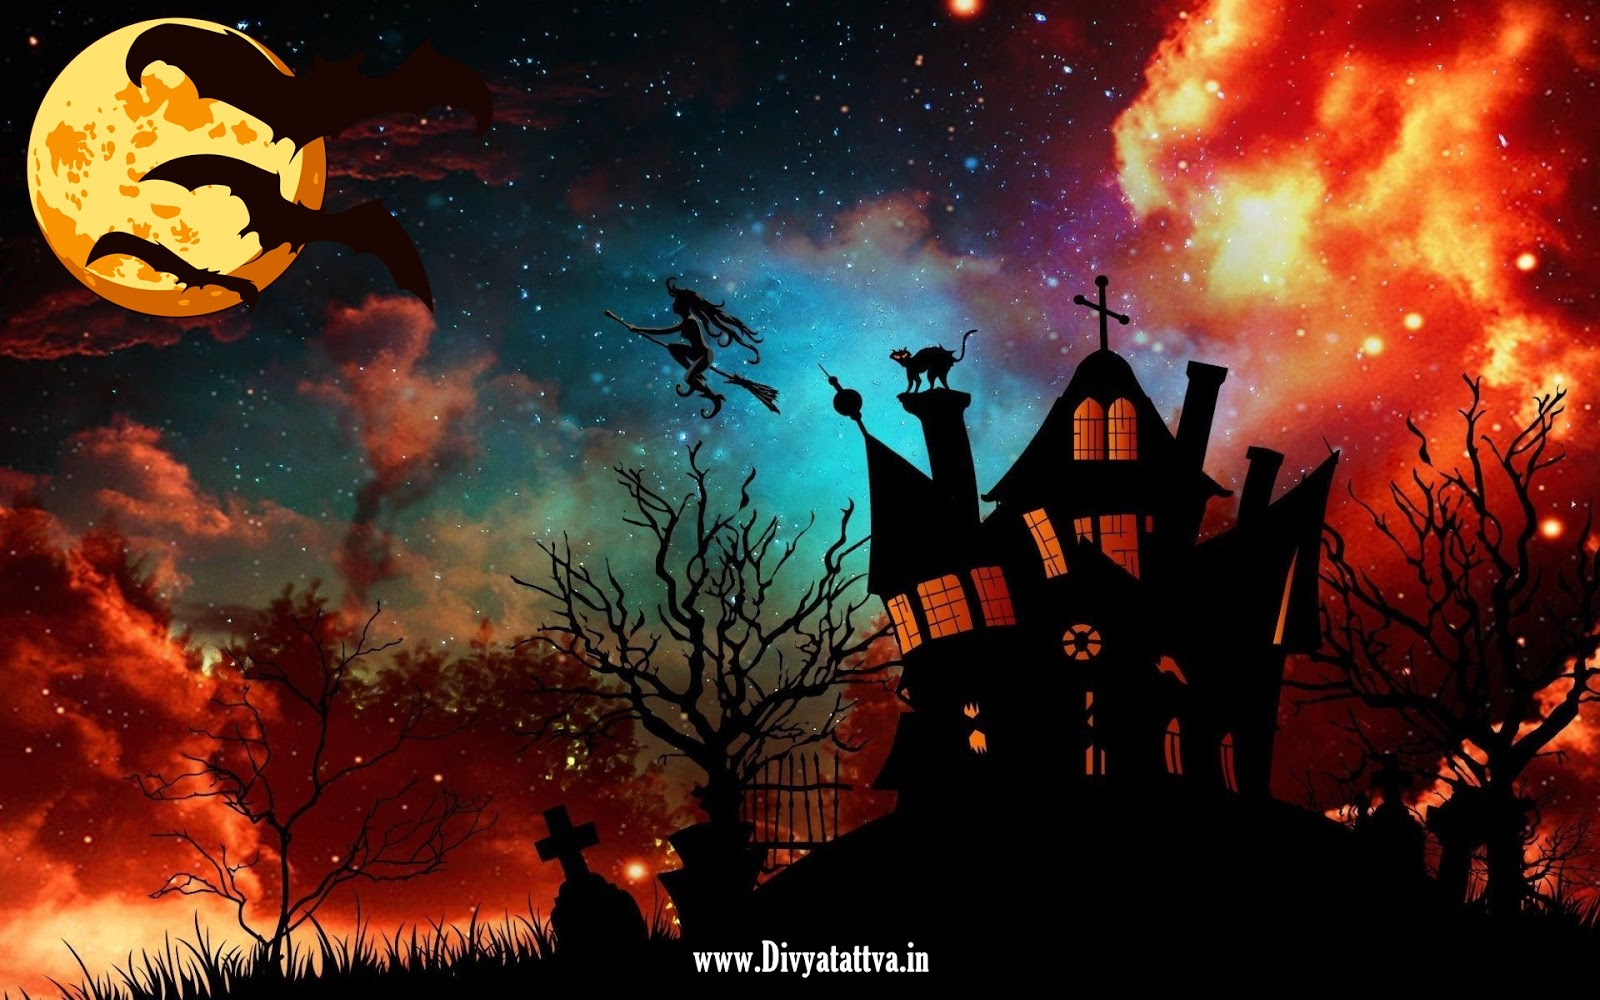 Divyatattva Astrology Free Horoscopes Psychic Tarot Yoga Tantra Occult Images Videos Halloween Hd Wallpaper Spooky Halloween Hd Desktop Wallpapers For 4k Ultra Hd Photos